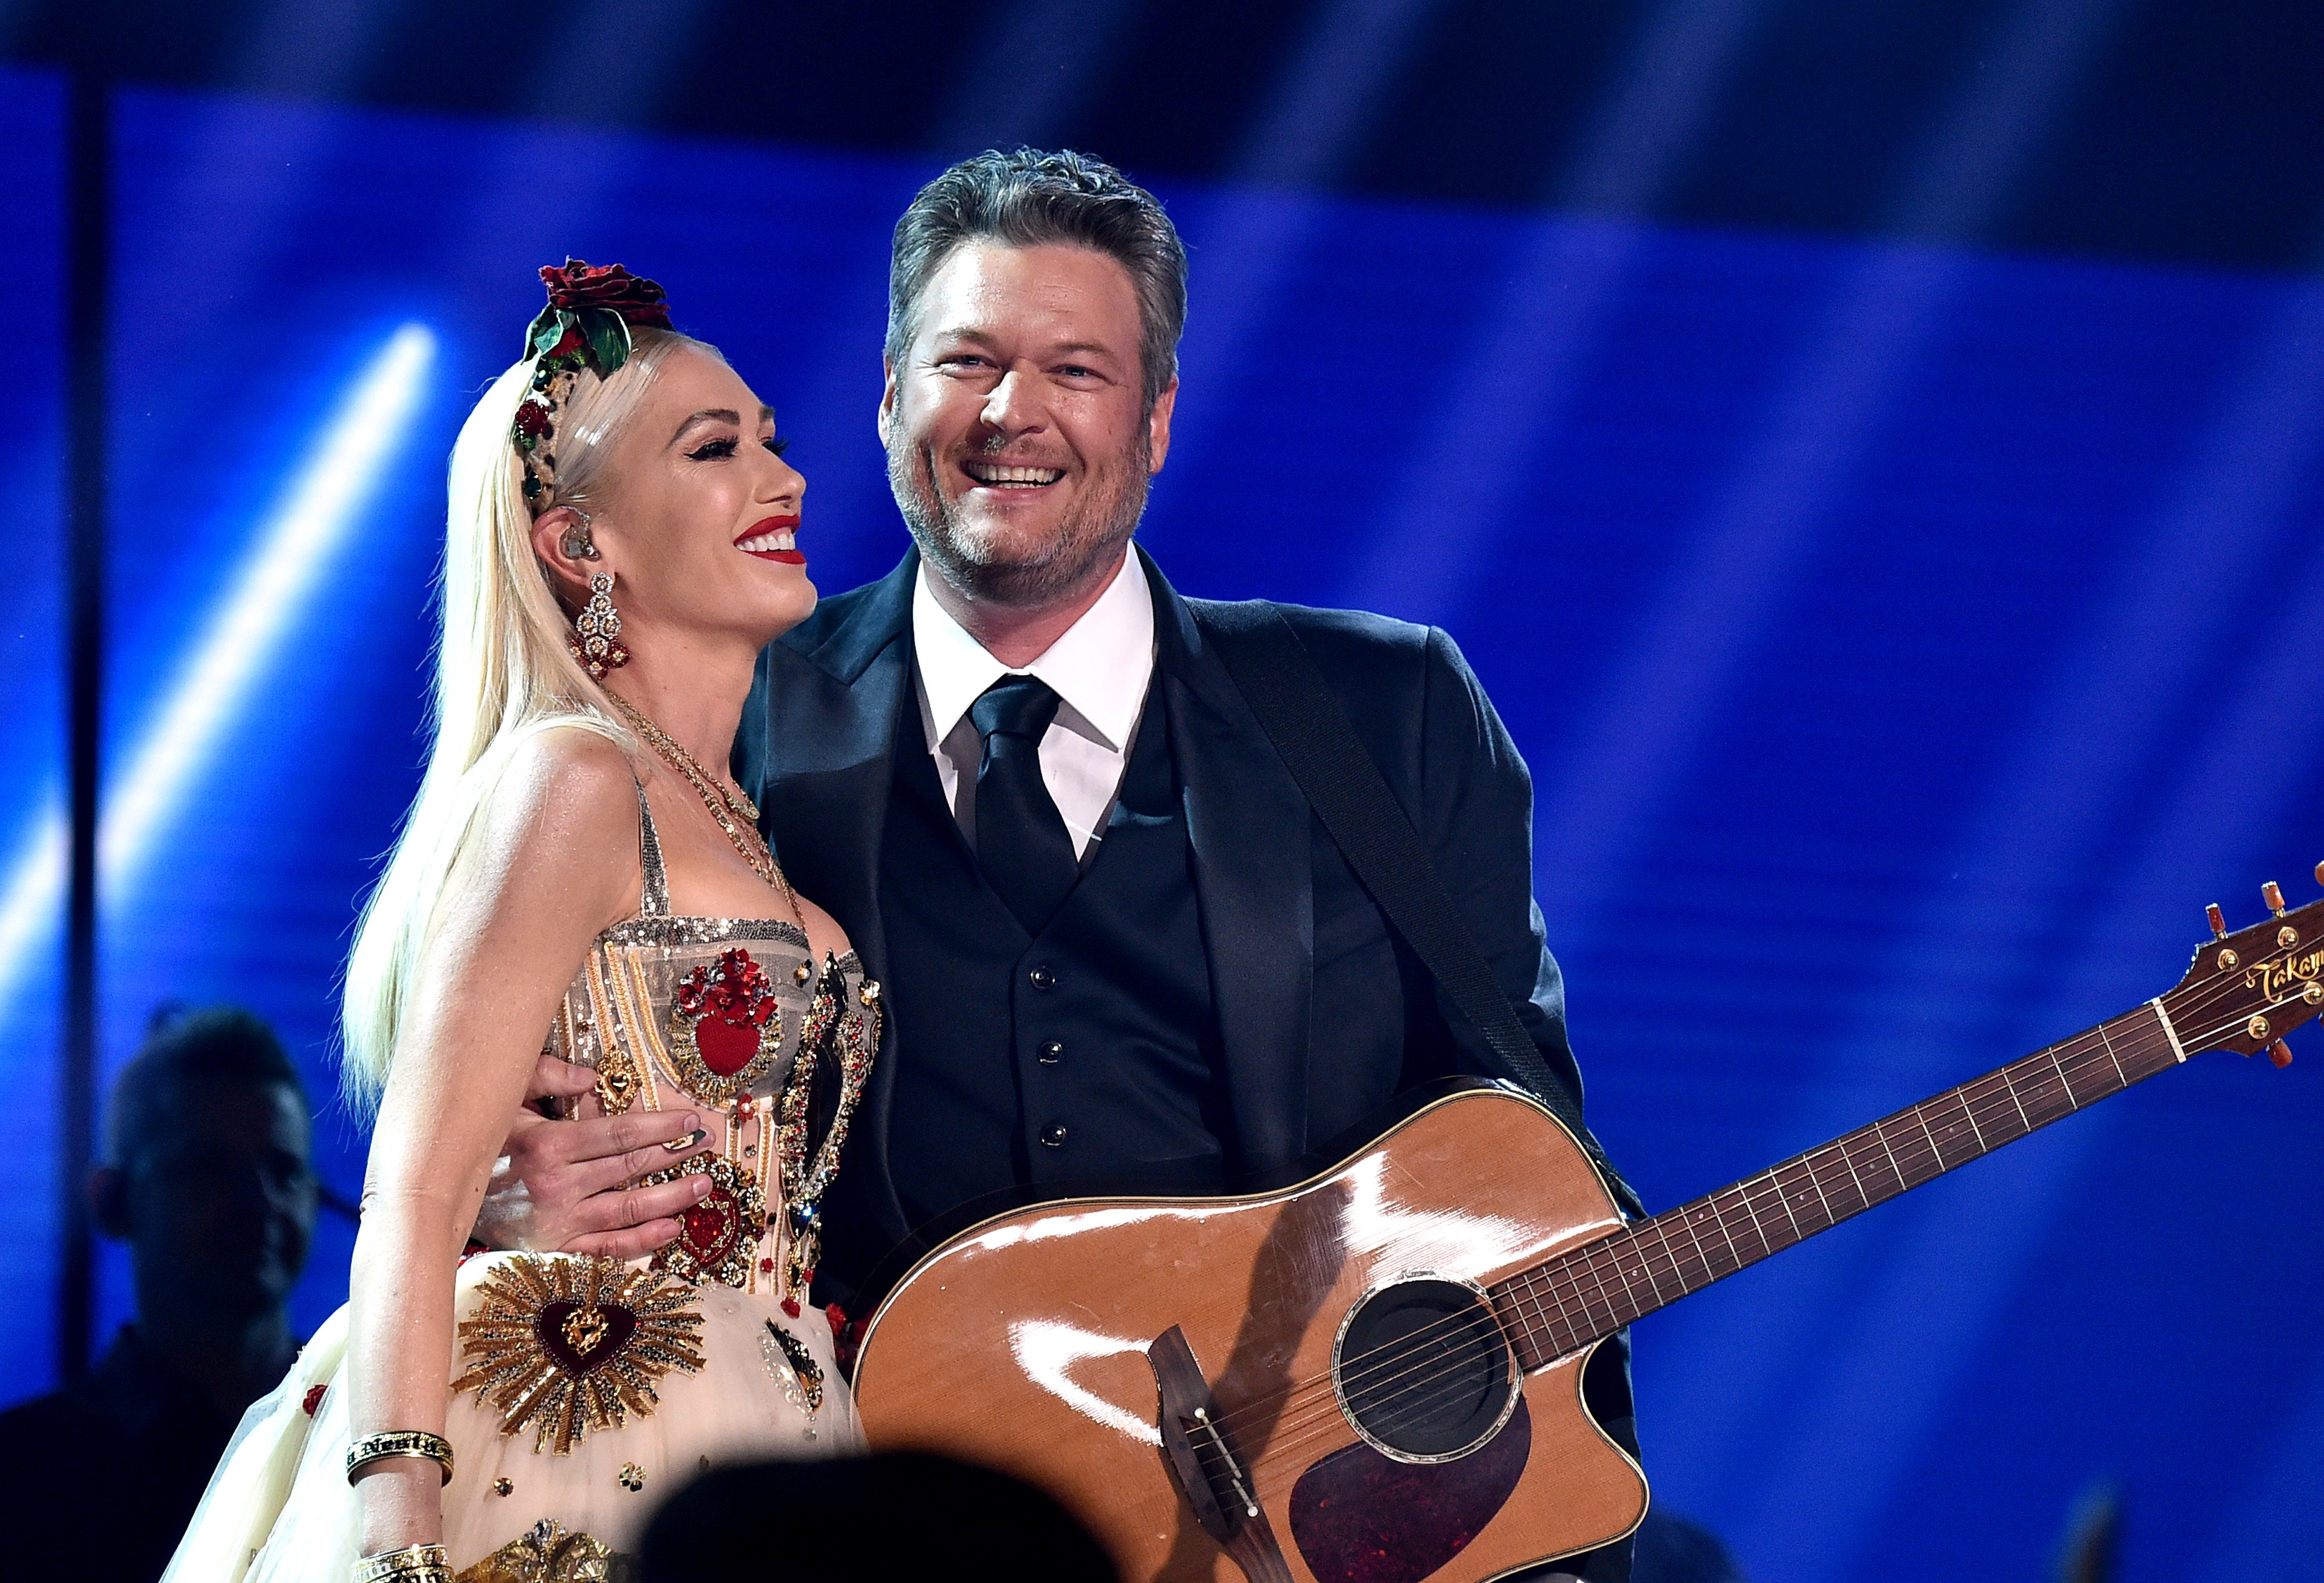 Gwen Stefani and Blake Shelton perform at the 62nd Annual GRAMMY Awards on January 26, 2020, in Los Angeles, California. | Source: Getty Images.